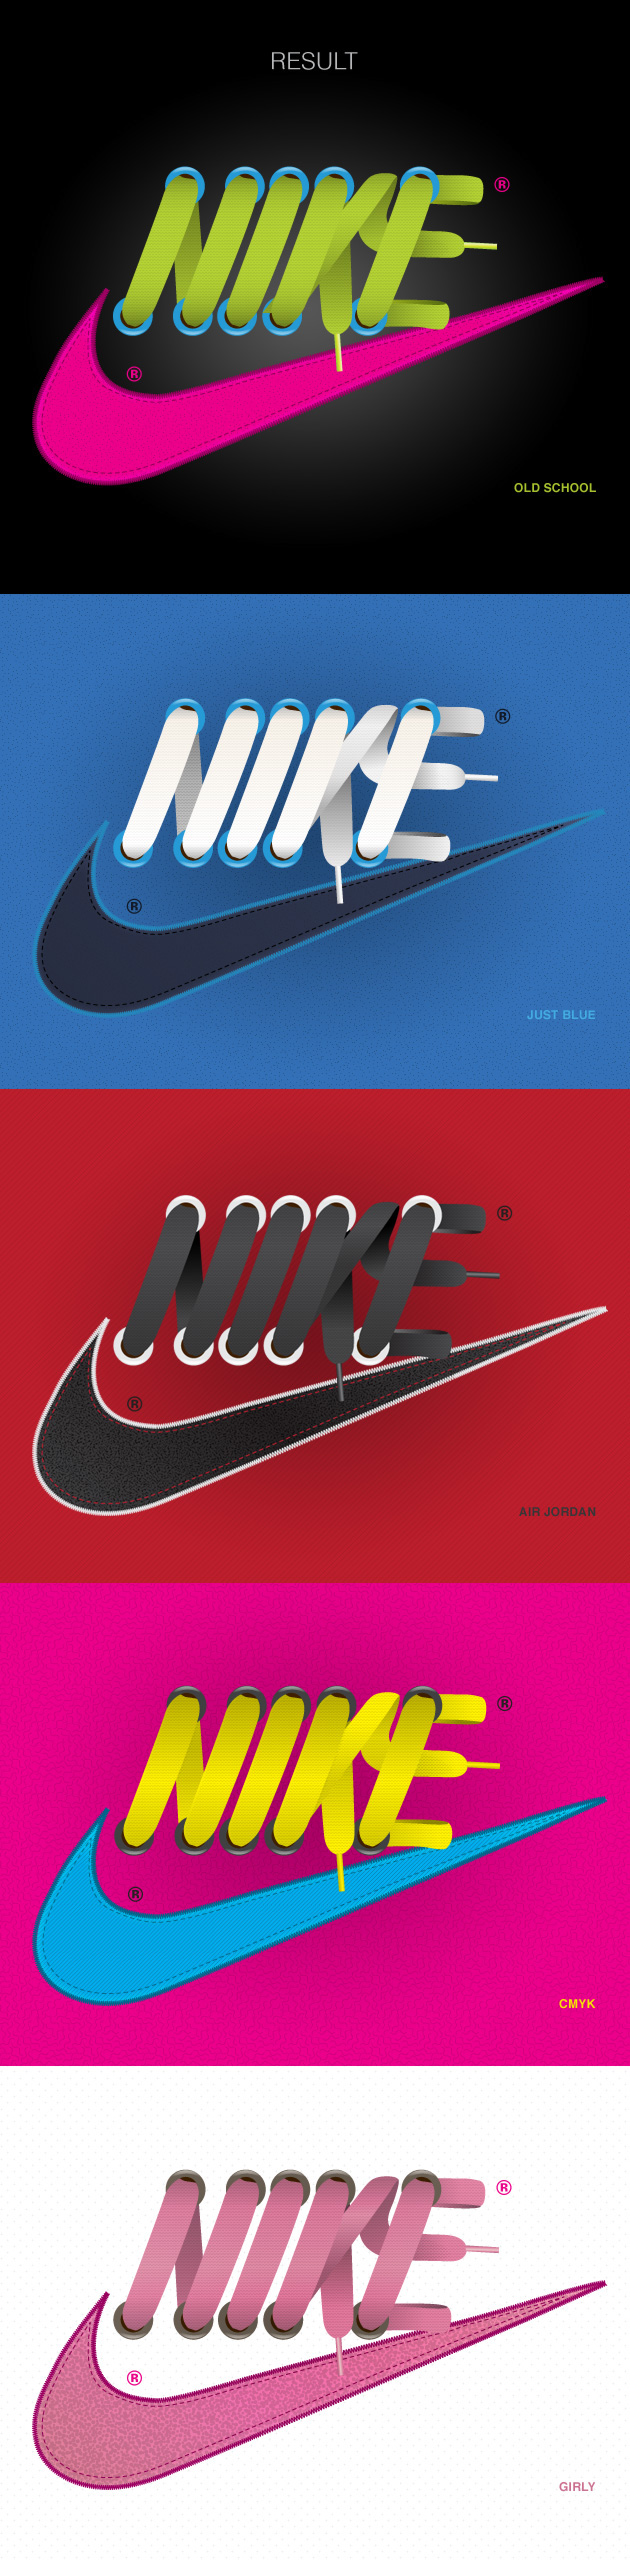 Nike shirt Portugal Lisbon color CYMK kids old school girly blue air jordan yhello Style shoes sneakers laces texture colour inspiration cool Street Swoosh yellow t-shirt